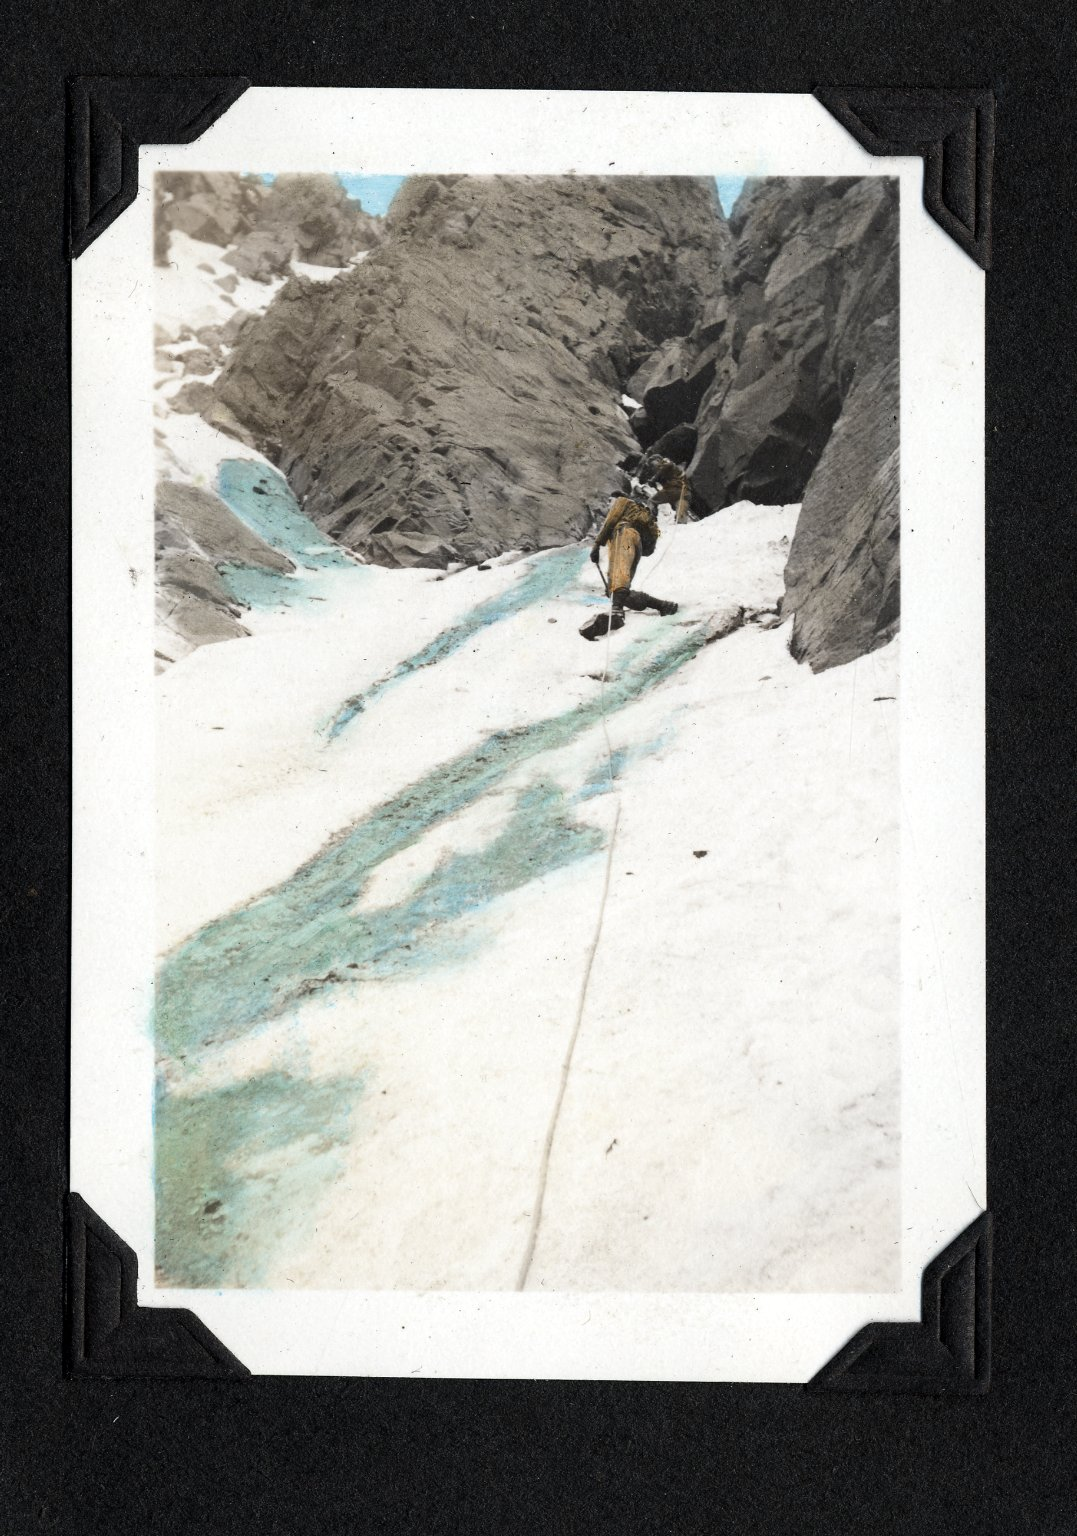 Climber on steep ice face